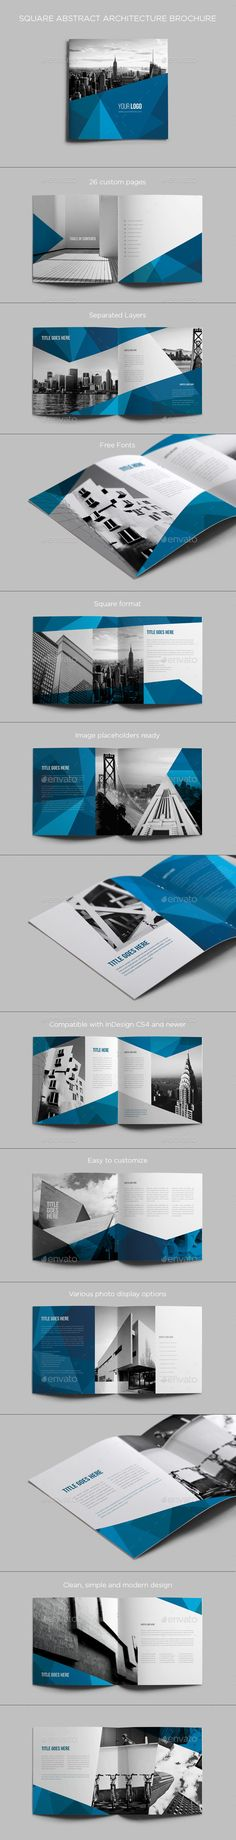 Square Abstract Architecture Brochure — InDesign INDD #brochure #modern • Available here → https://graphicriver.net/item/square-abstract-architecture-brochure/9204539?ref=pxcr